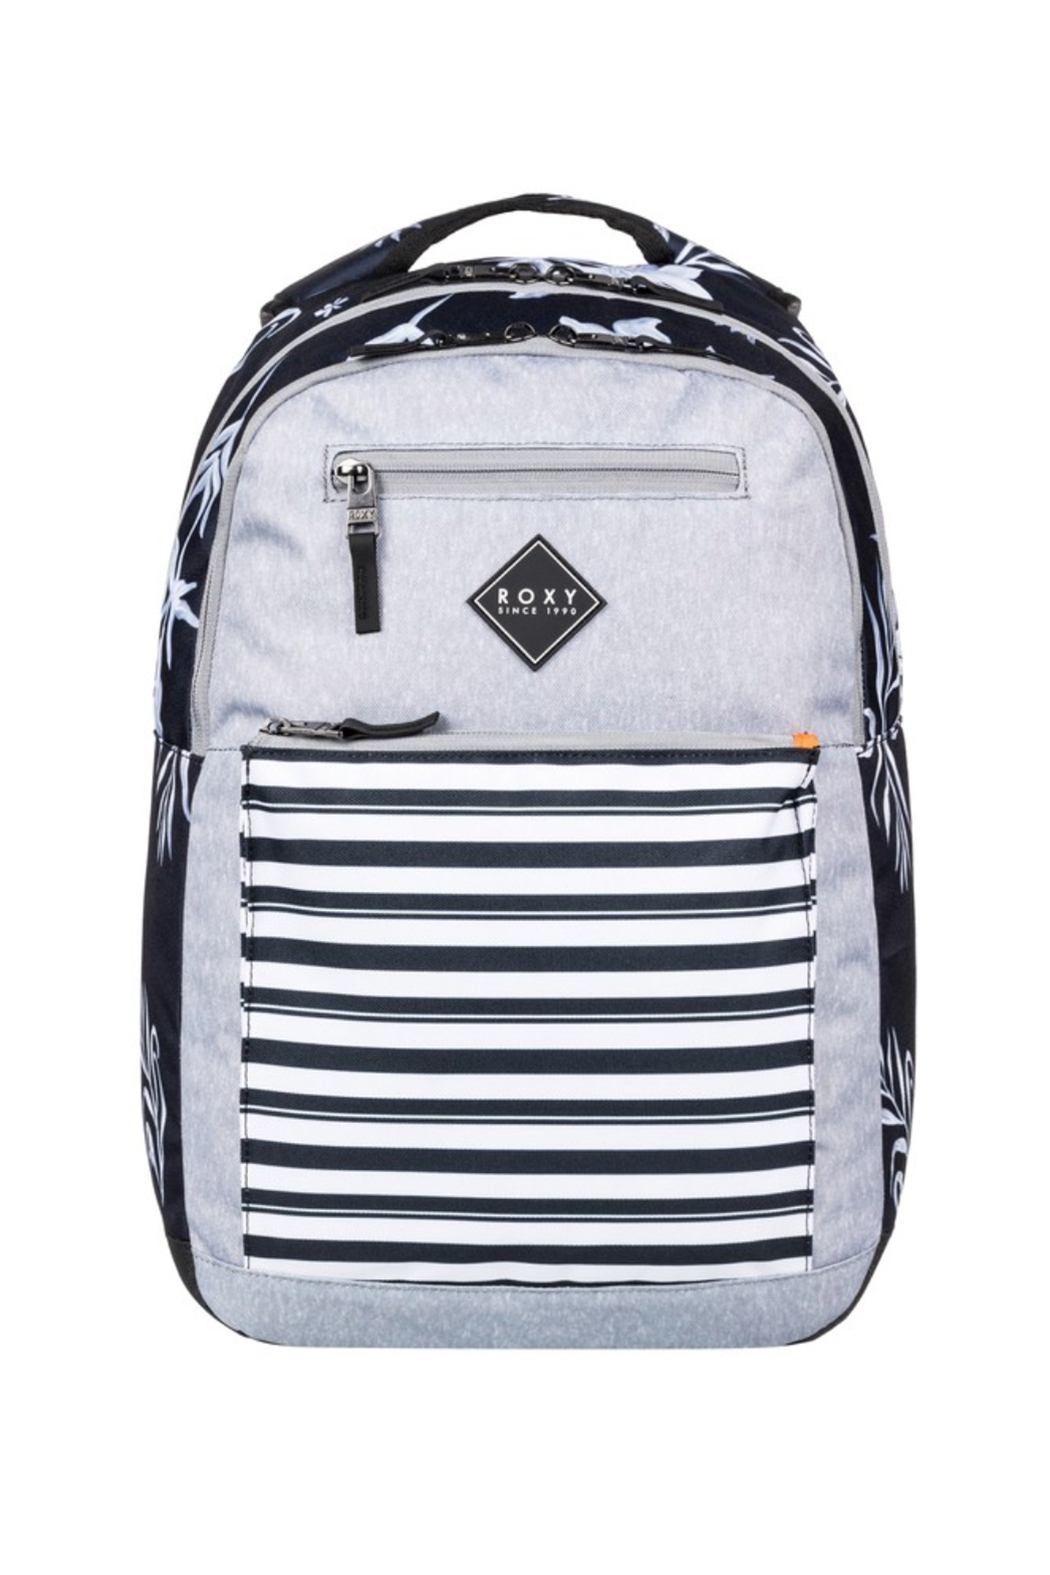 Roxy Here You Are 23.5L Medium Backpack - Main Image